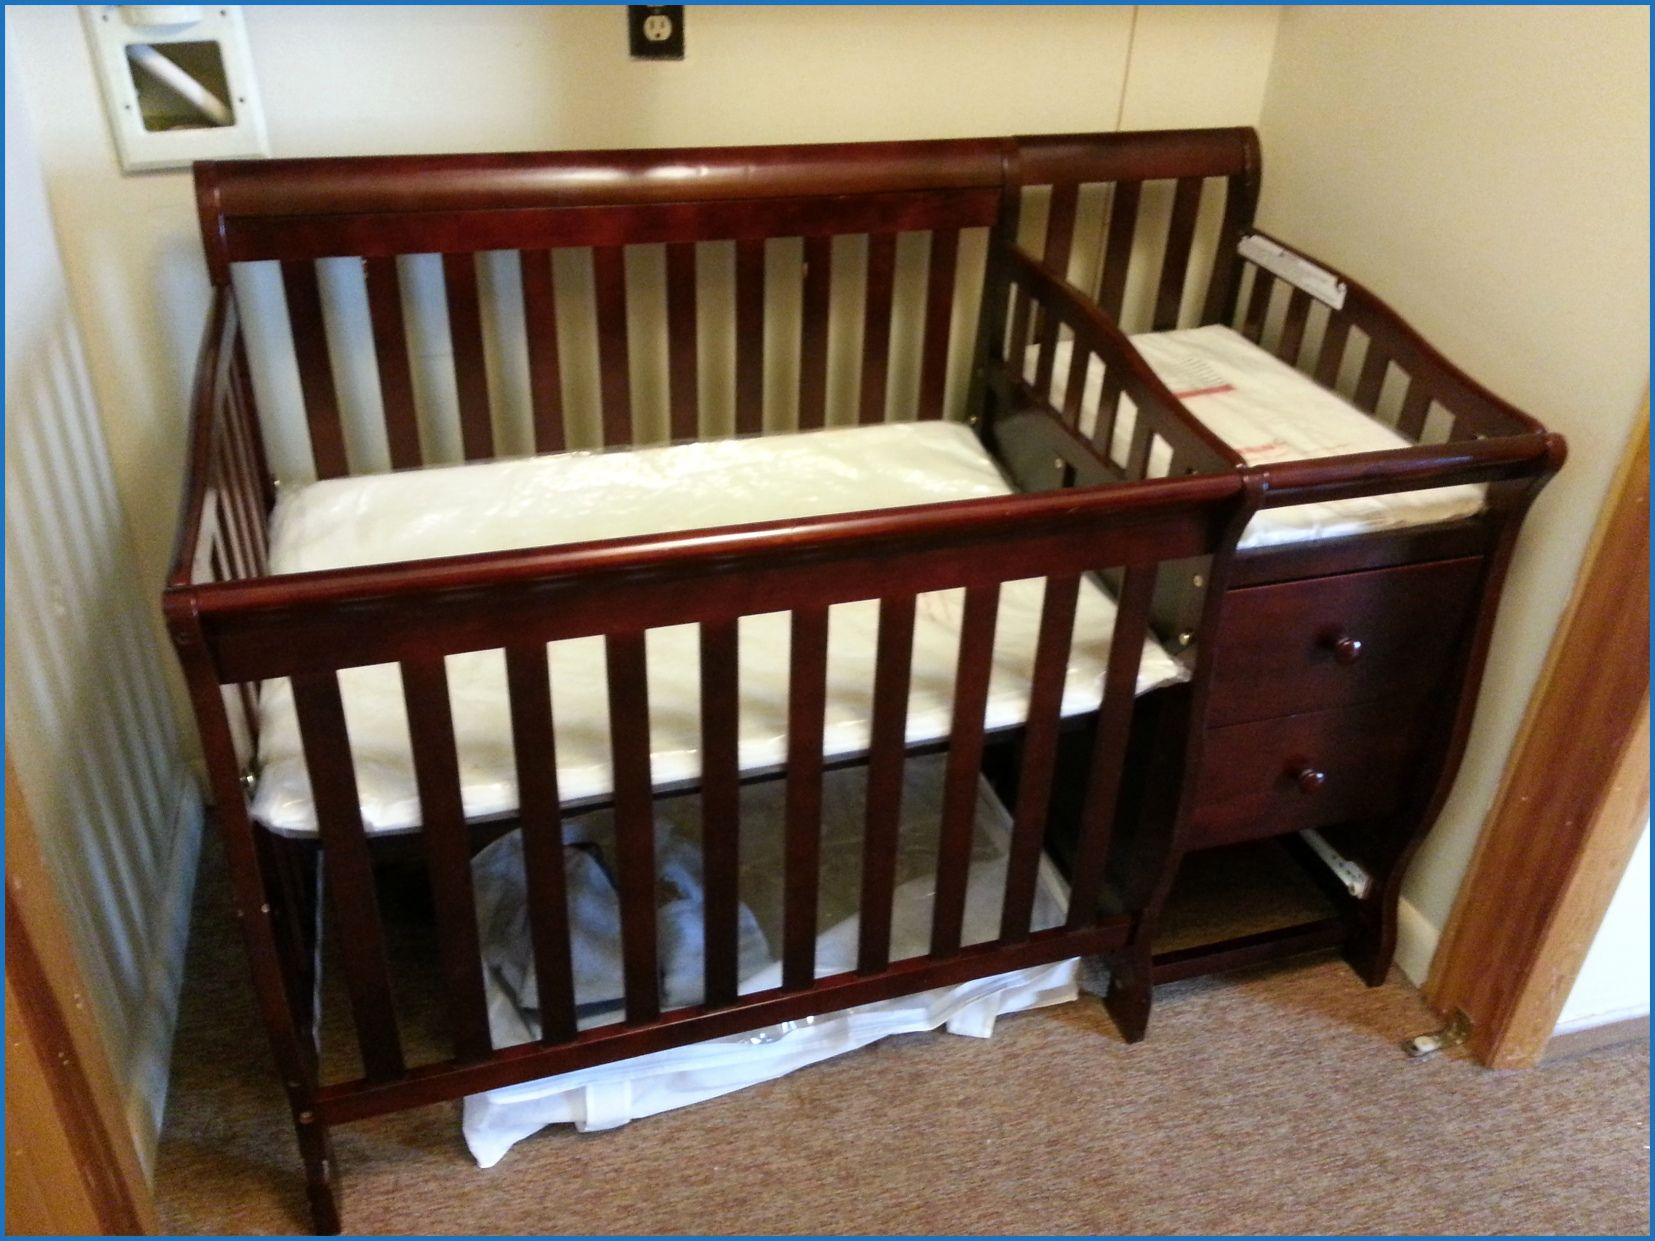 an jijiz beda beds bedf cribs a full bed old f that turn crib toddler turns into baby size convertible